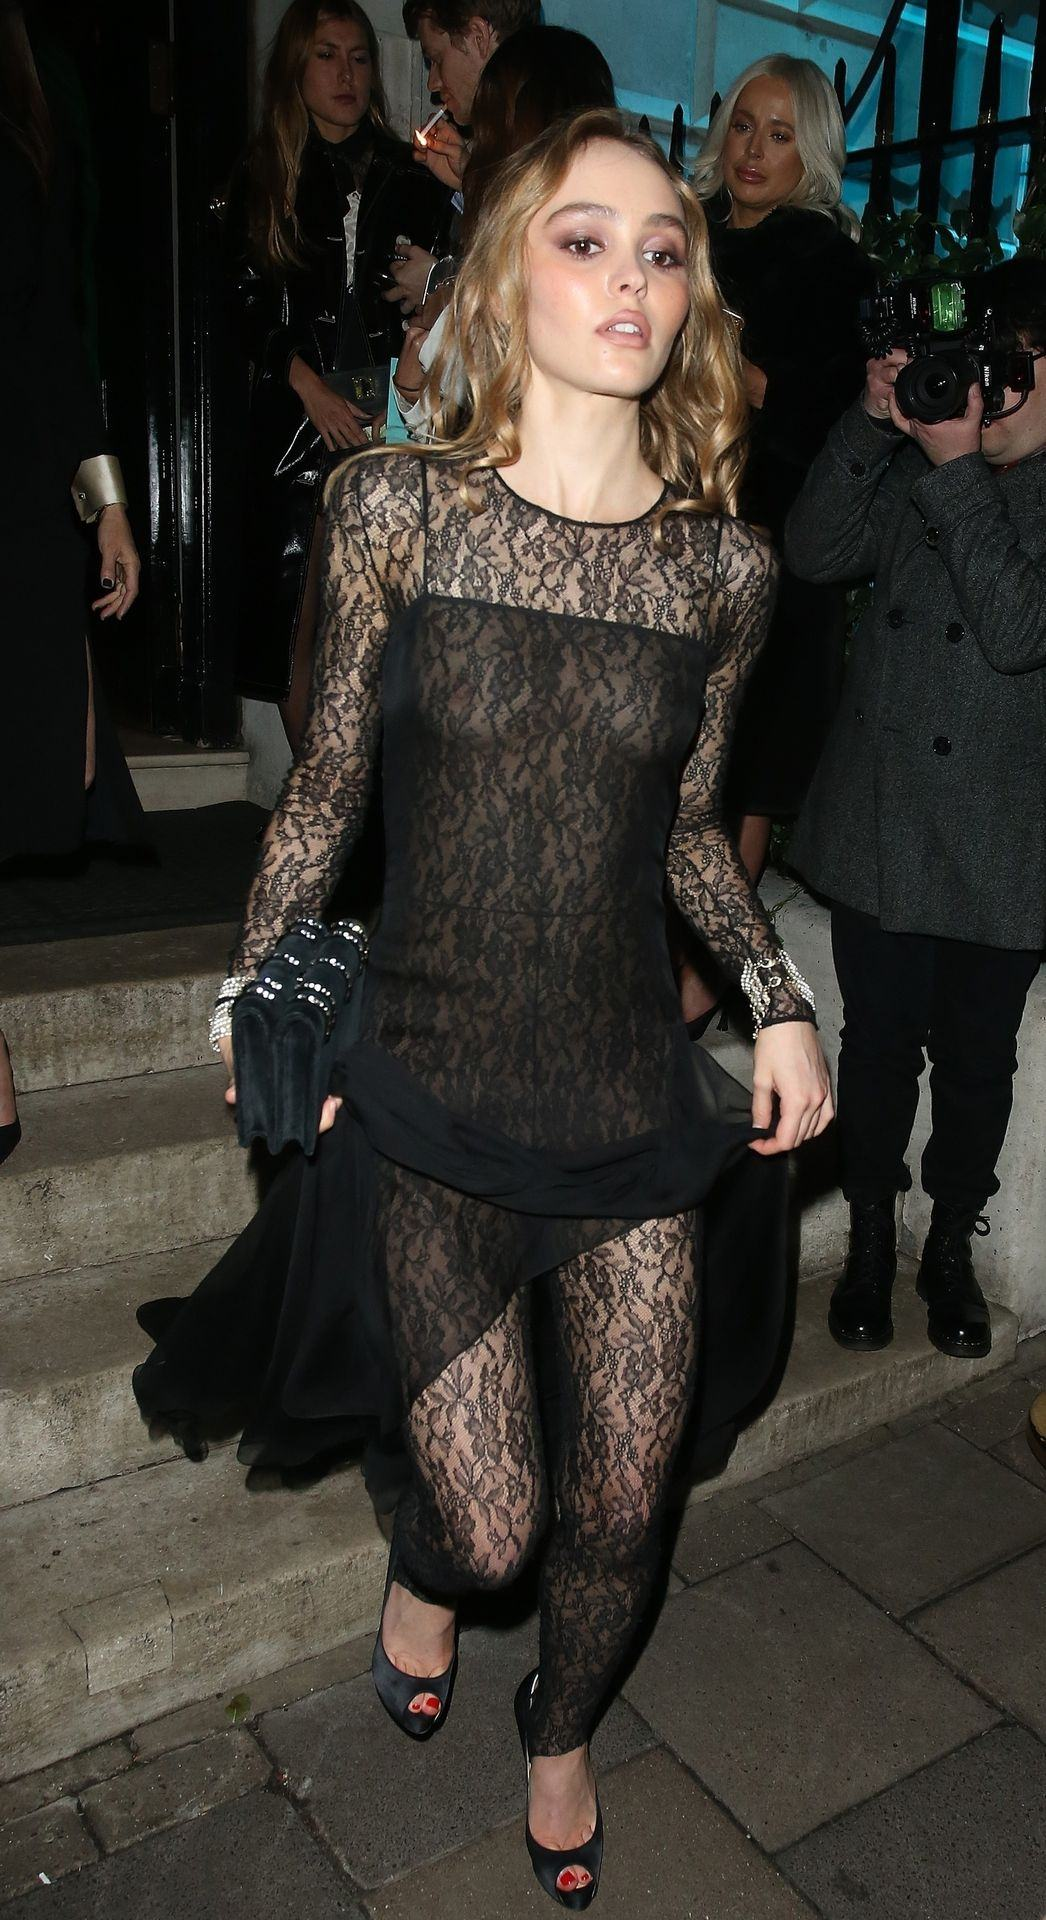 Lily-Rose Depp Oops See Through Photos - Thefappening.link